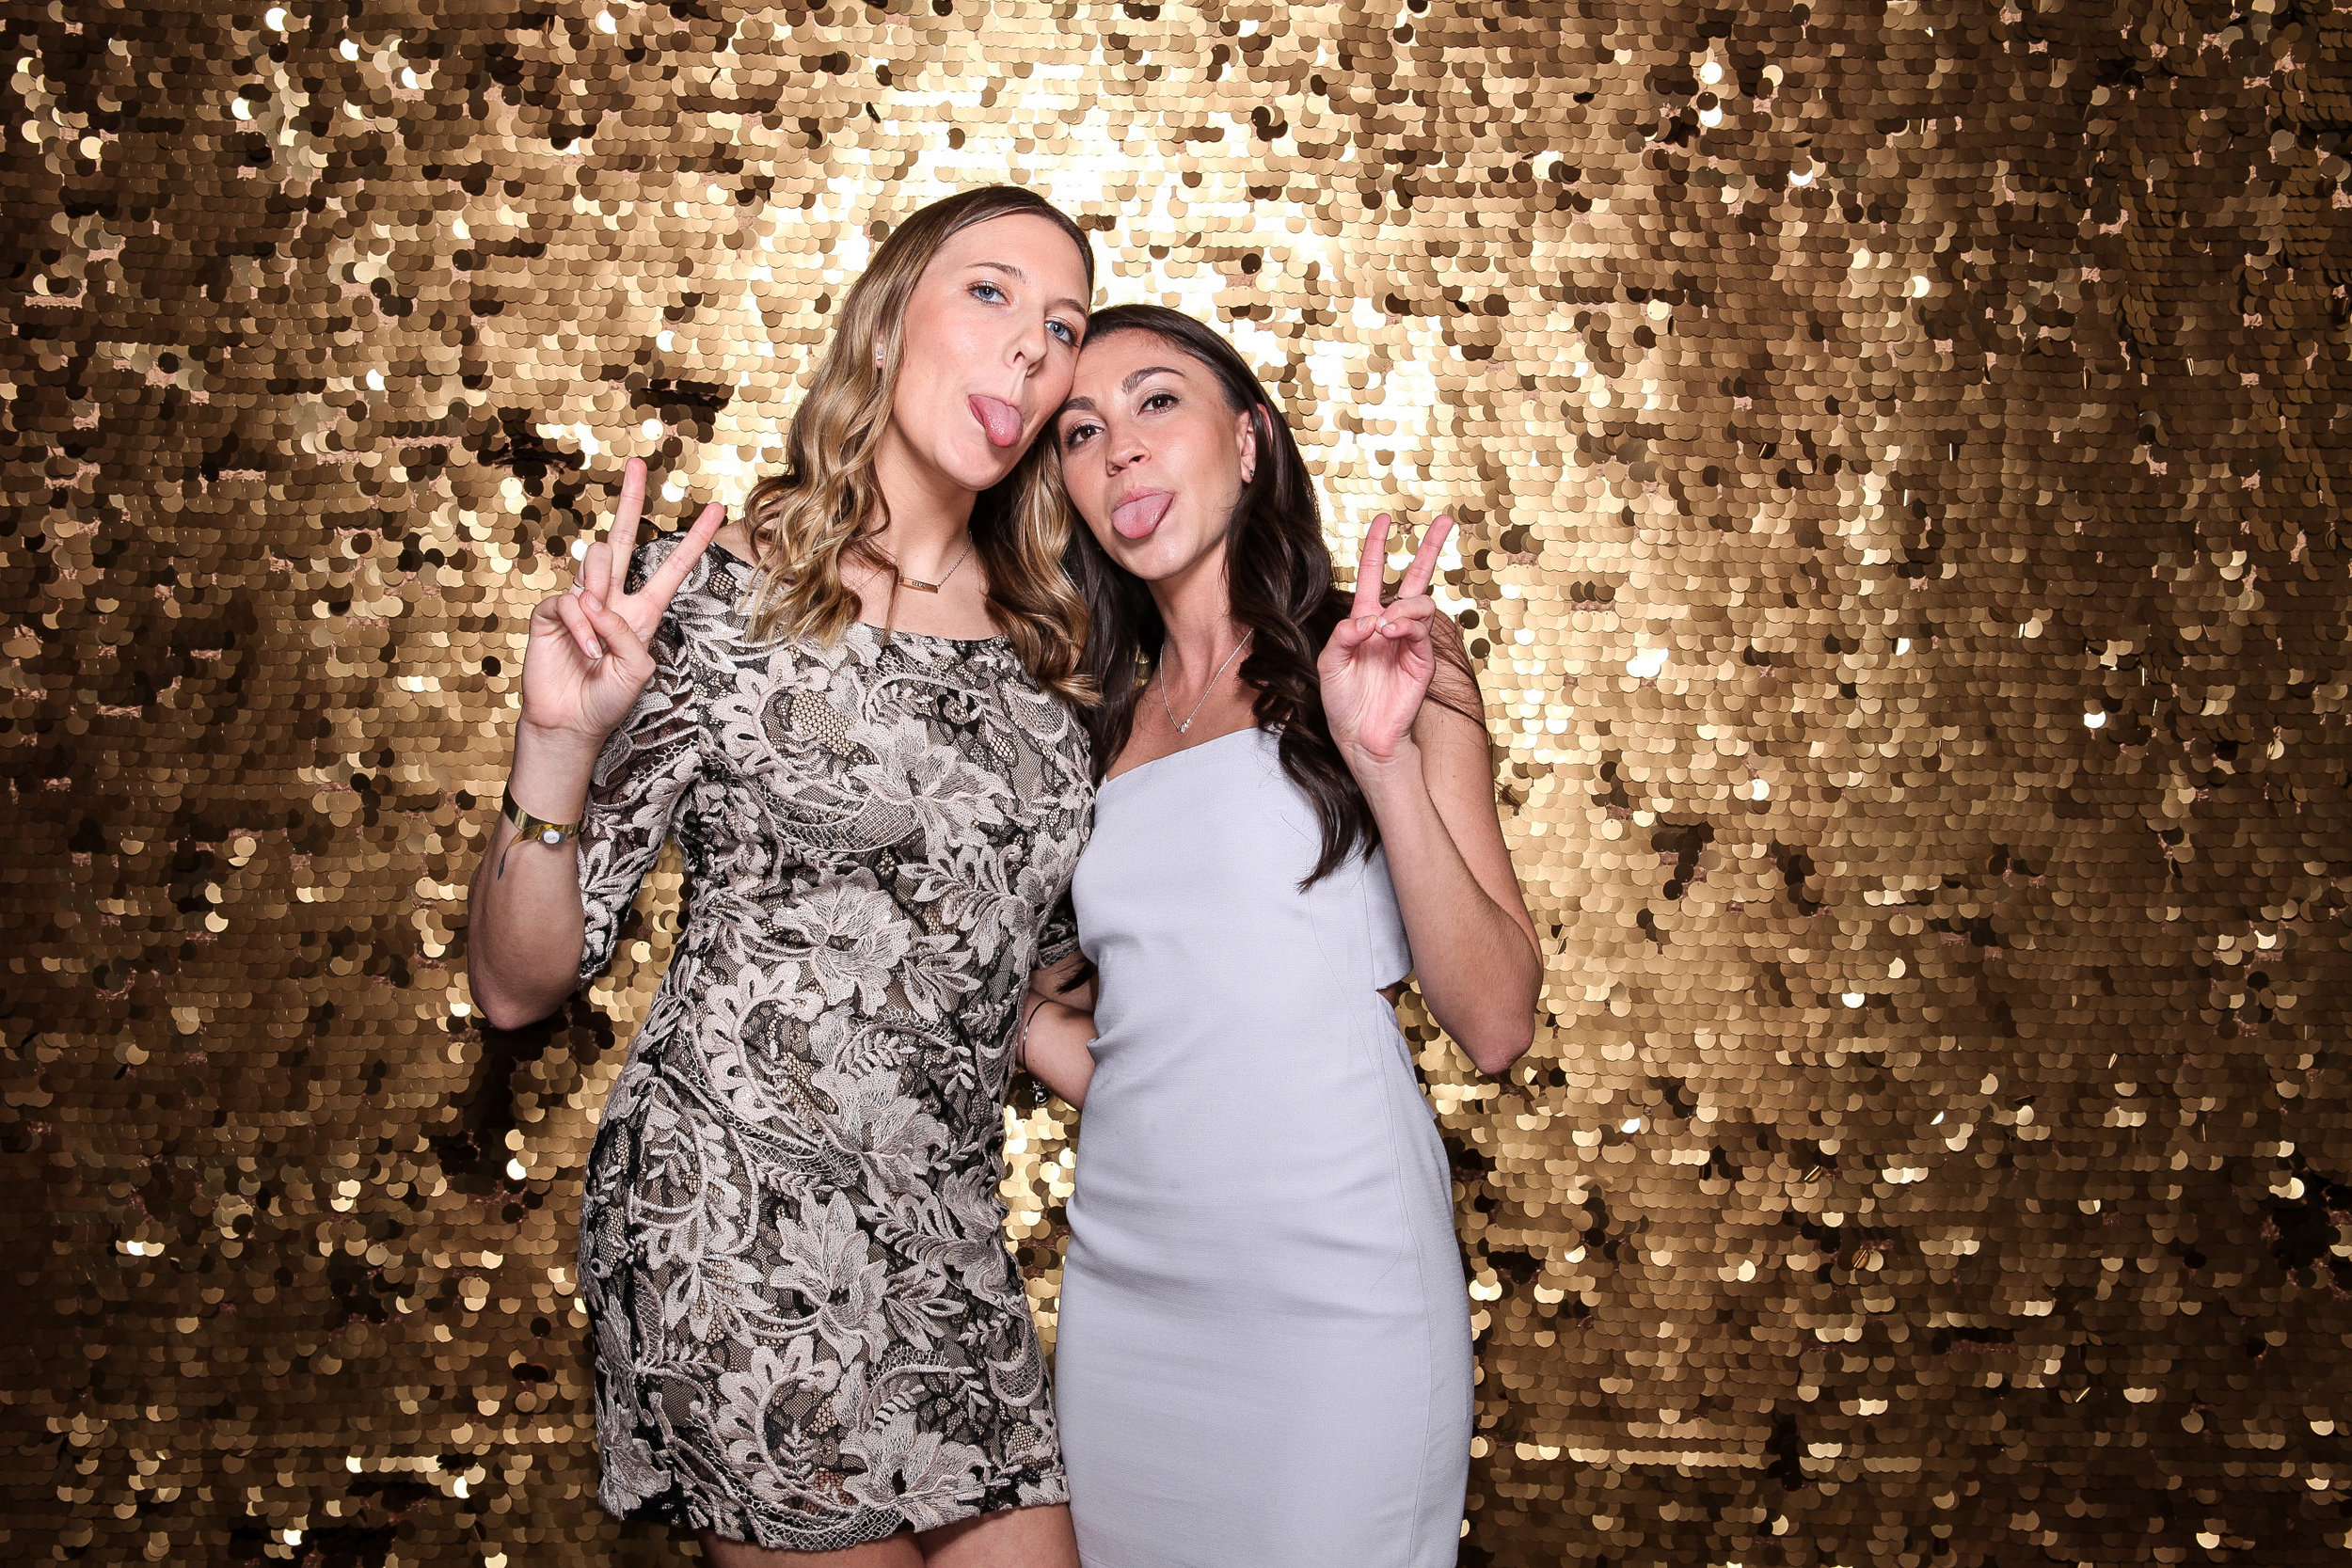 20190503_Adelphi_Senior_Formal-209.jpg